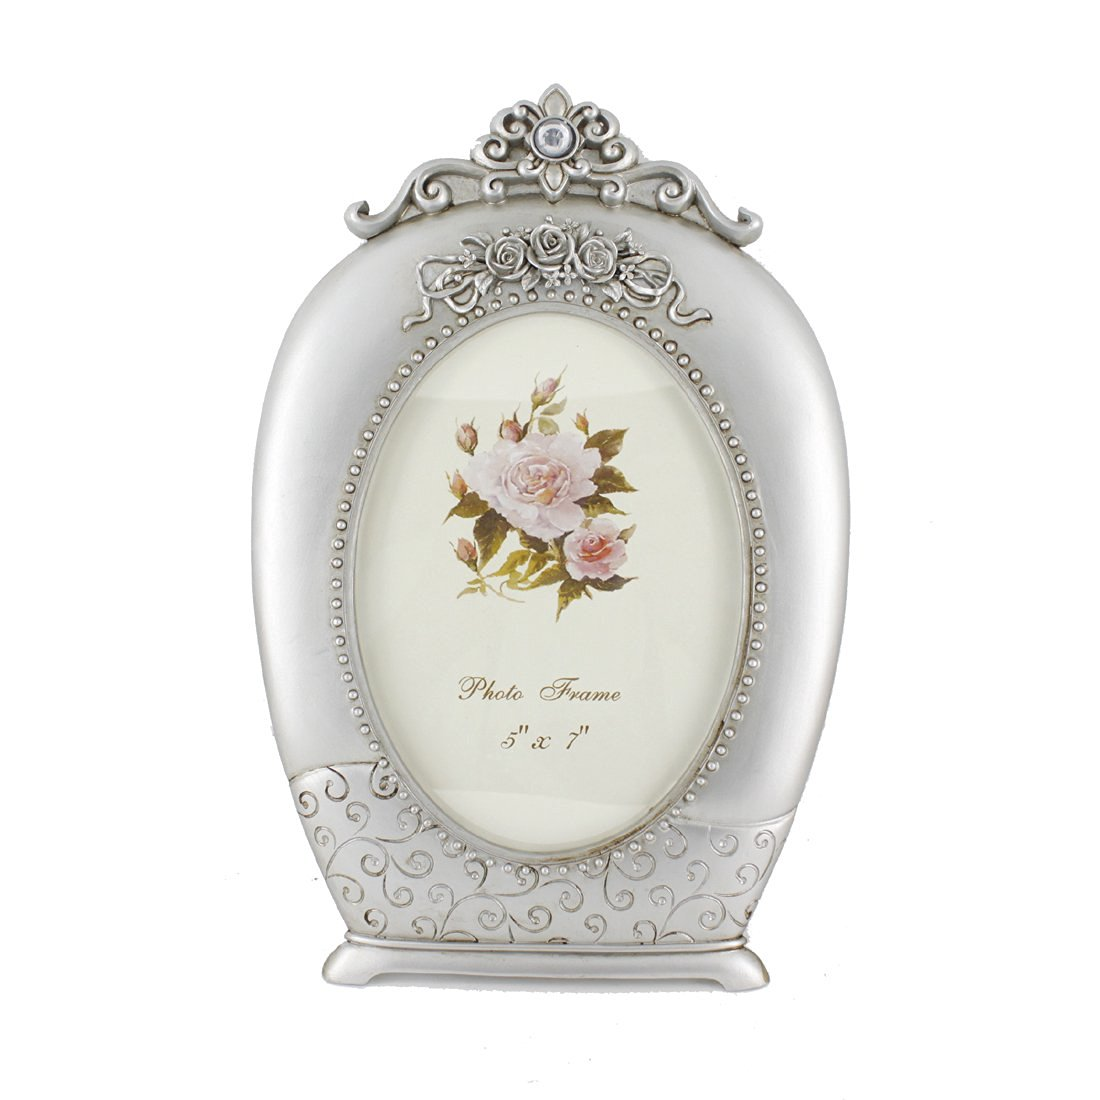 Cheap Oval Frame 5x7, find Oval Frame 5x7 deals on line at Alibaba.com